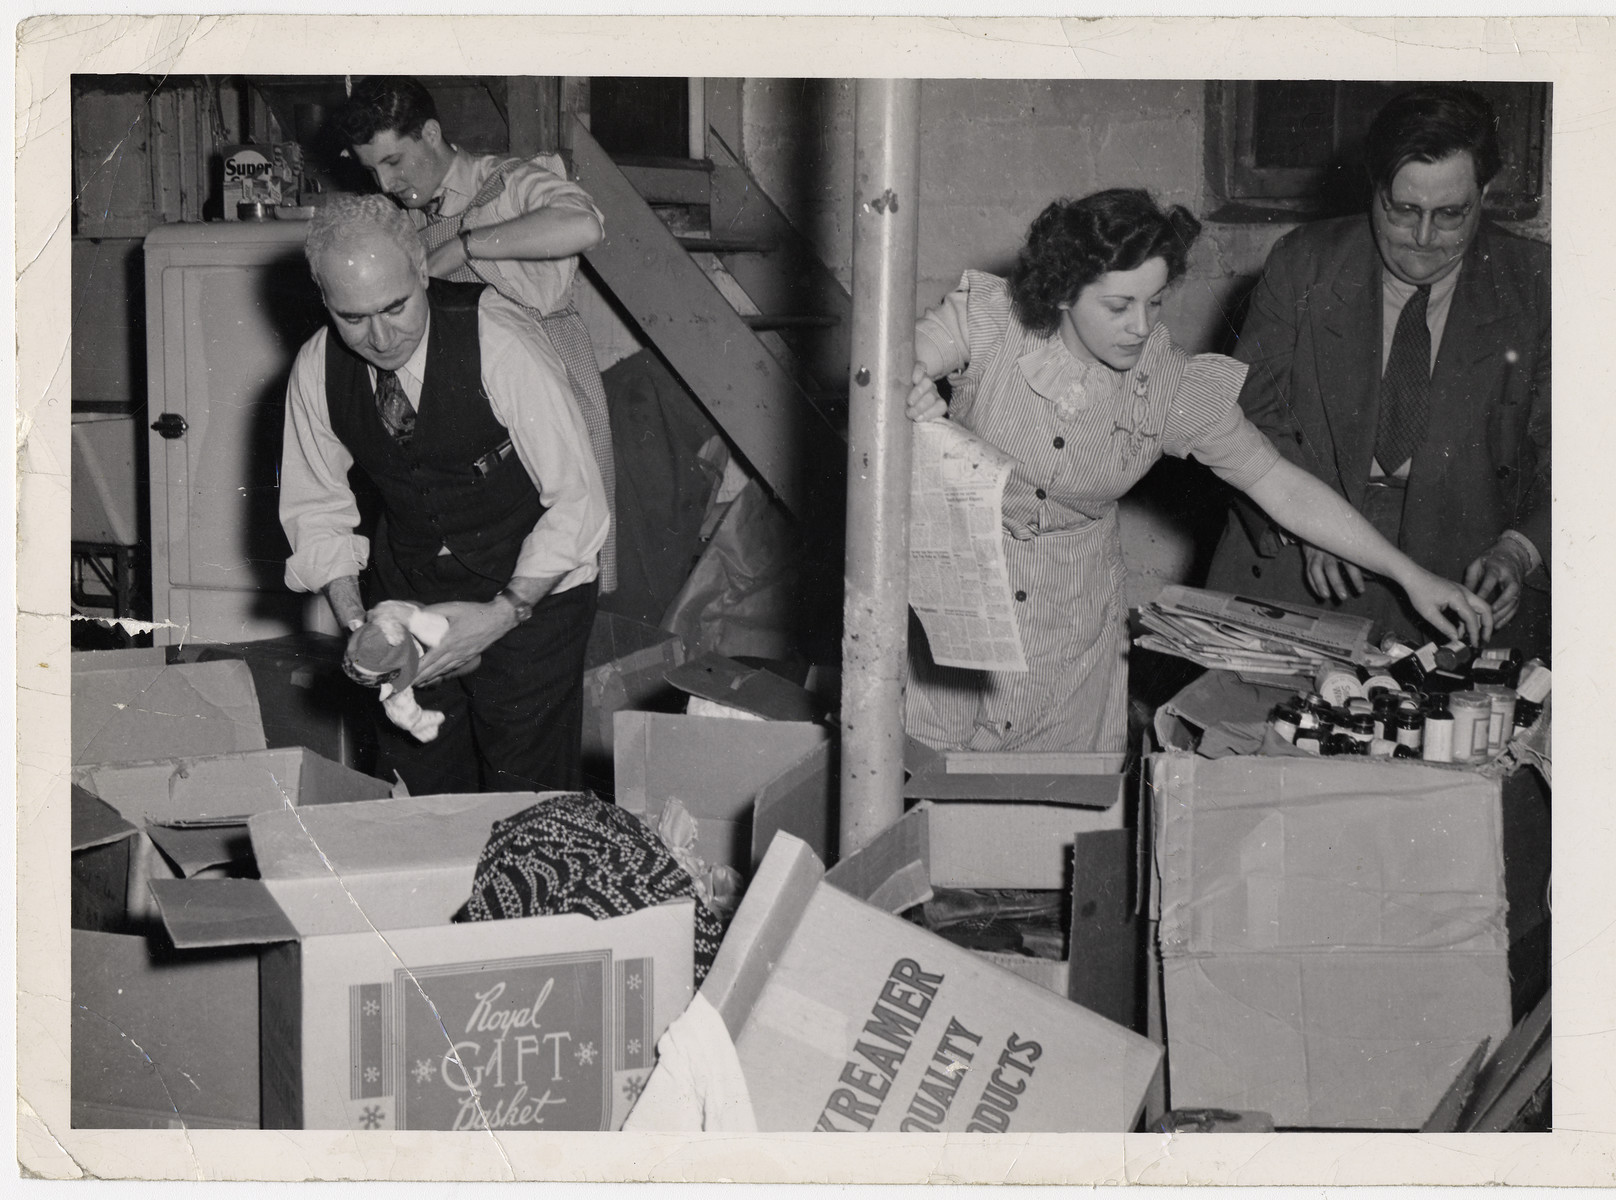 Maurice Levitt (front left) and three other members of the Frankfurt Jewish GI Council unpack boxes of supplies sent by the American Jewish community to aid displaced persons.